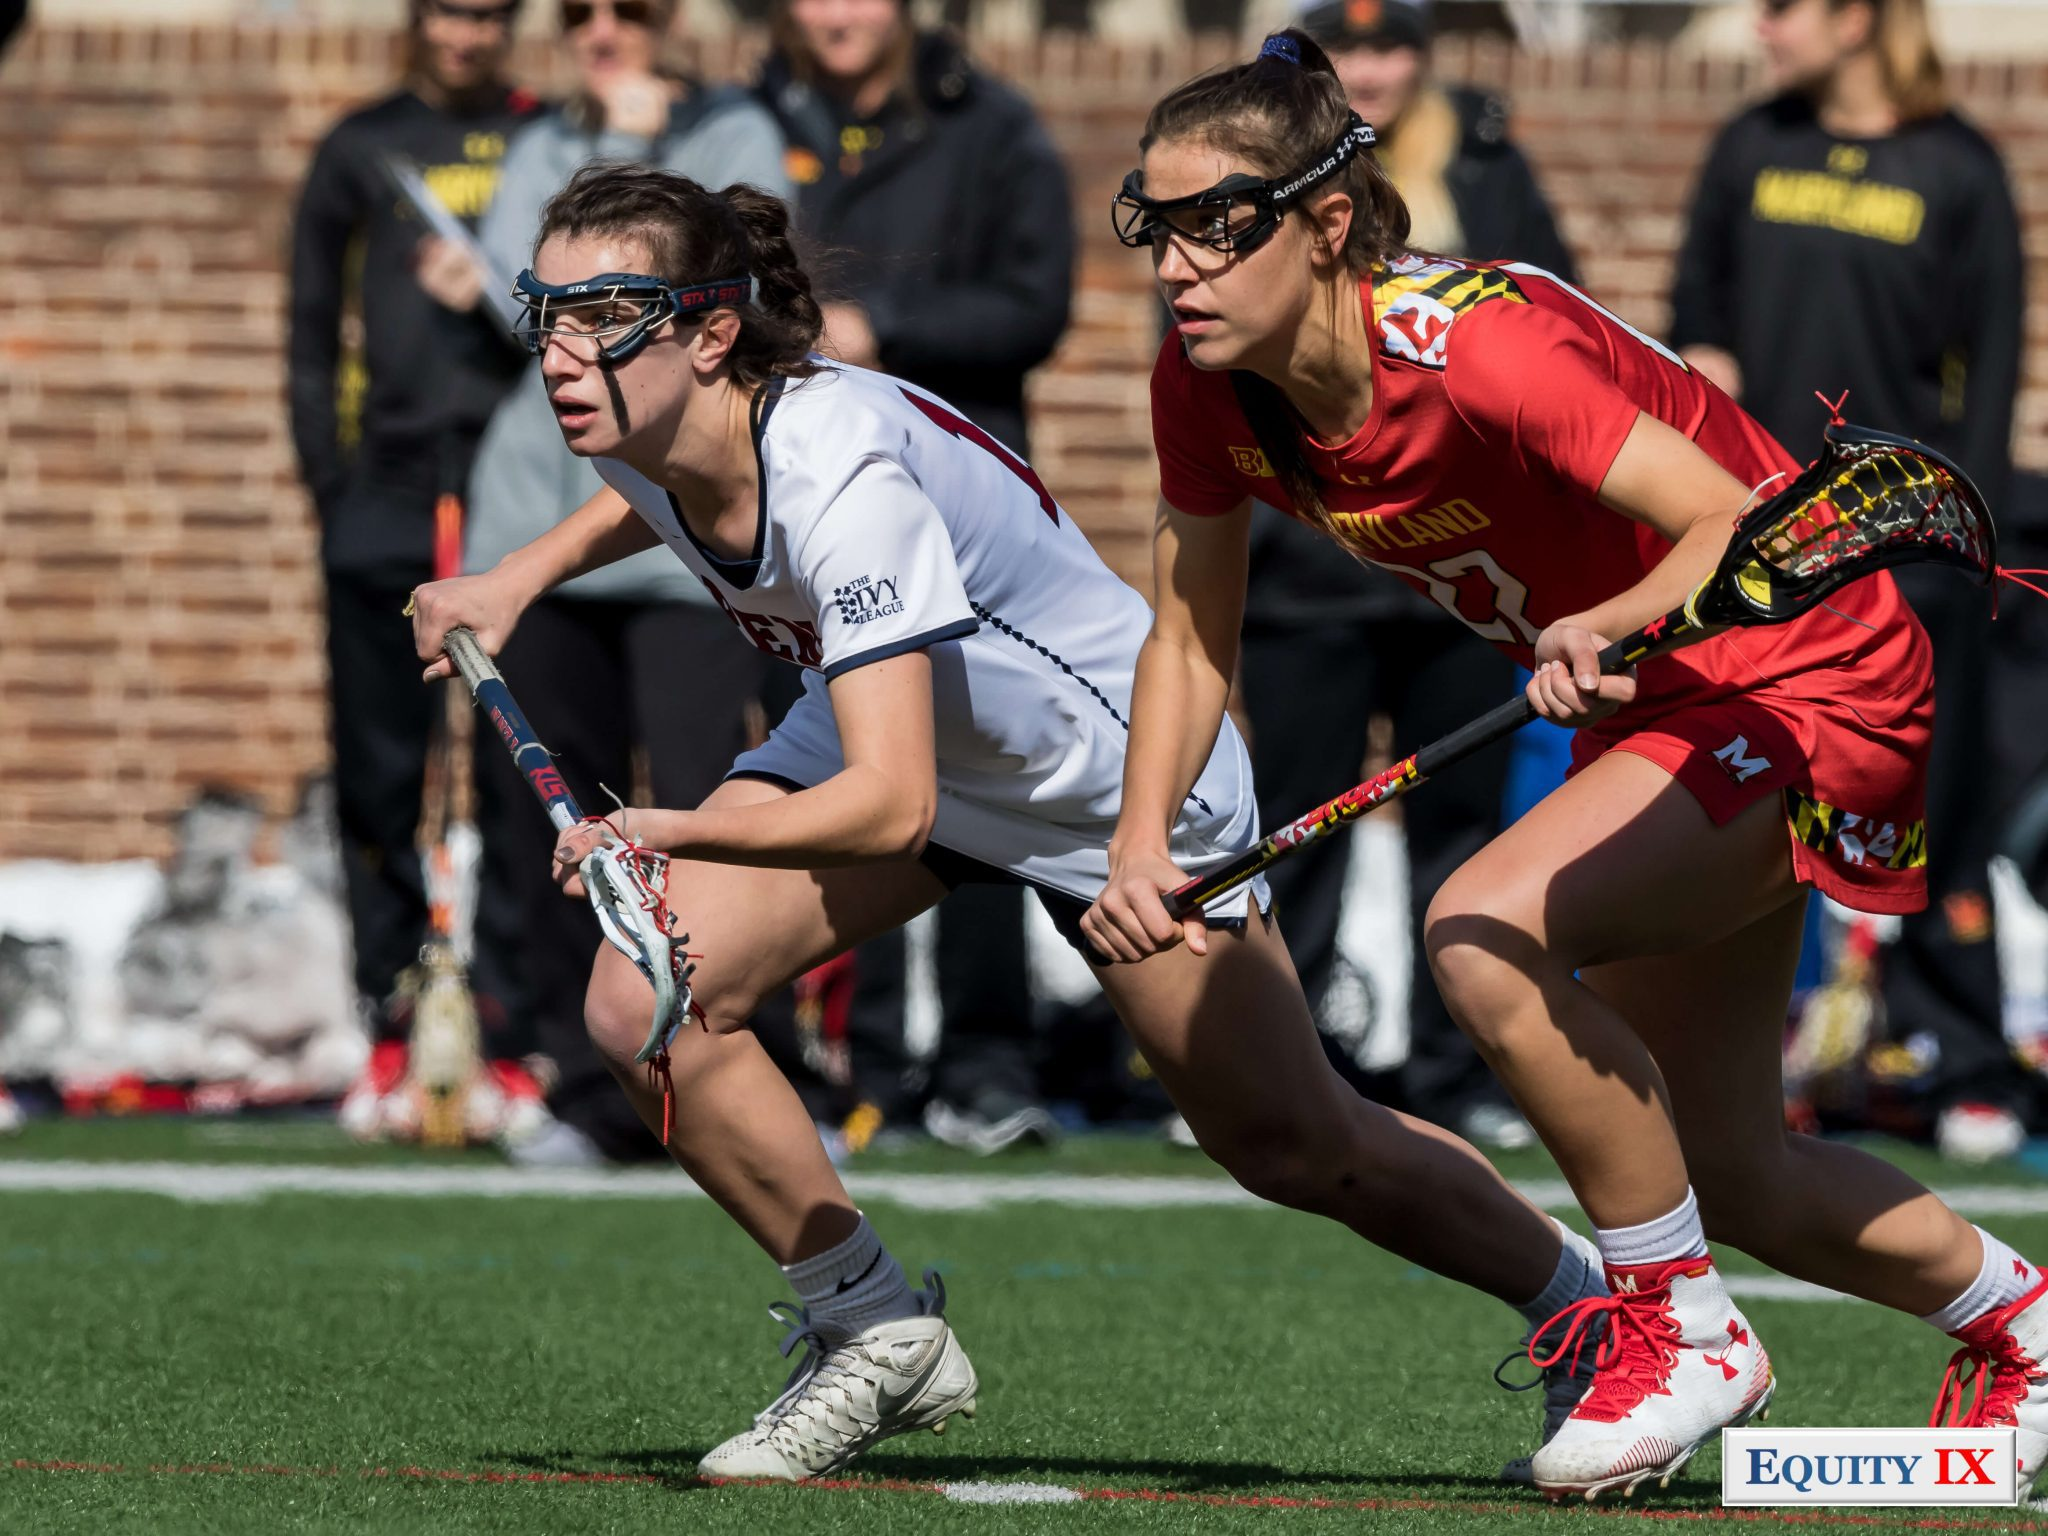 Top Freshmen: Zoe Belodeau (Penn) and Grace Griffin (Maryland) line up for draw control © Equity IX - SportsOgram